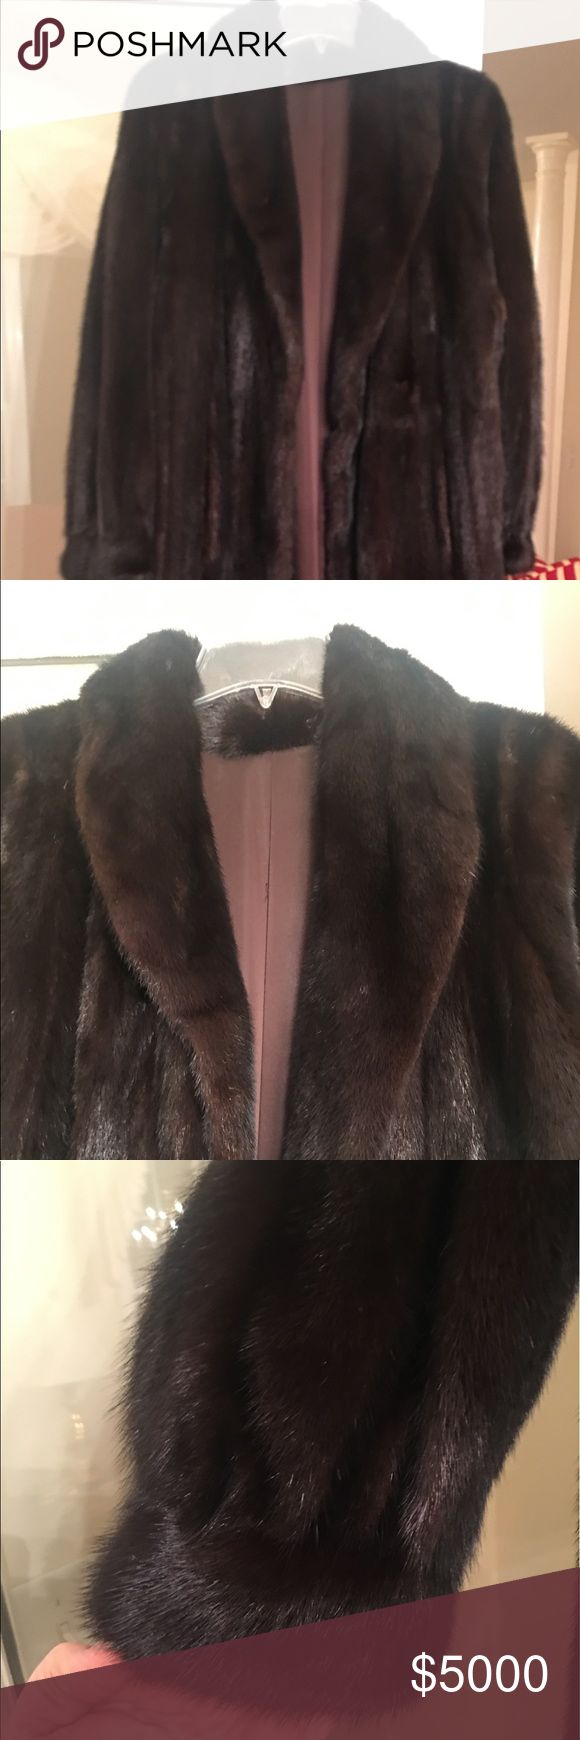 Gorgeous Genuine Full Length Mink Coat This is a genuine mink coat. it measures from shoulder to hem 51 inches. Sleeve length from shoulder to end of cuff 25 inches. Pit to pit 23 inches. Has a shawl collar and it fastens with Dasco closures down front of coat. It is a dark brown. Has two pockets and is s very warm and very elegant- beautiful coat! Dasco Jackets & Coats